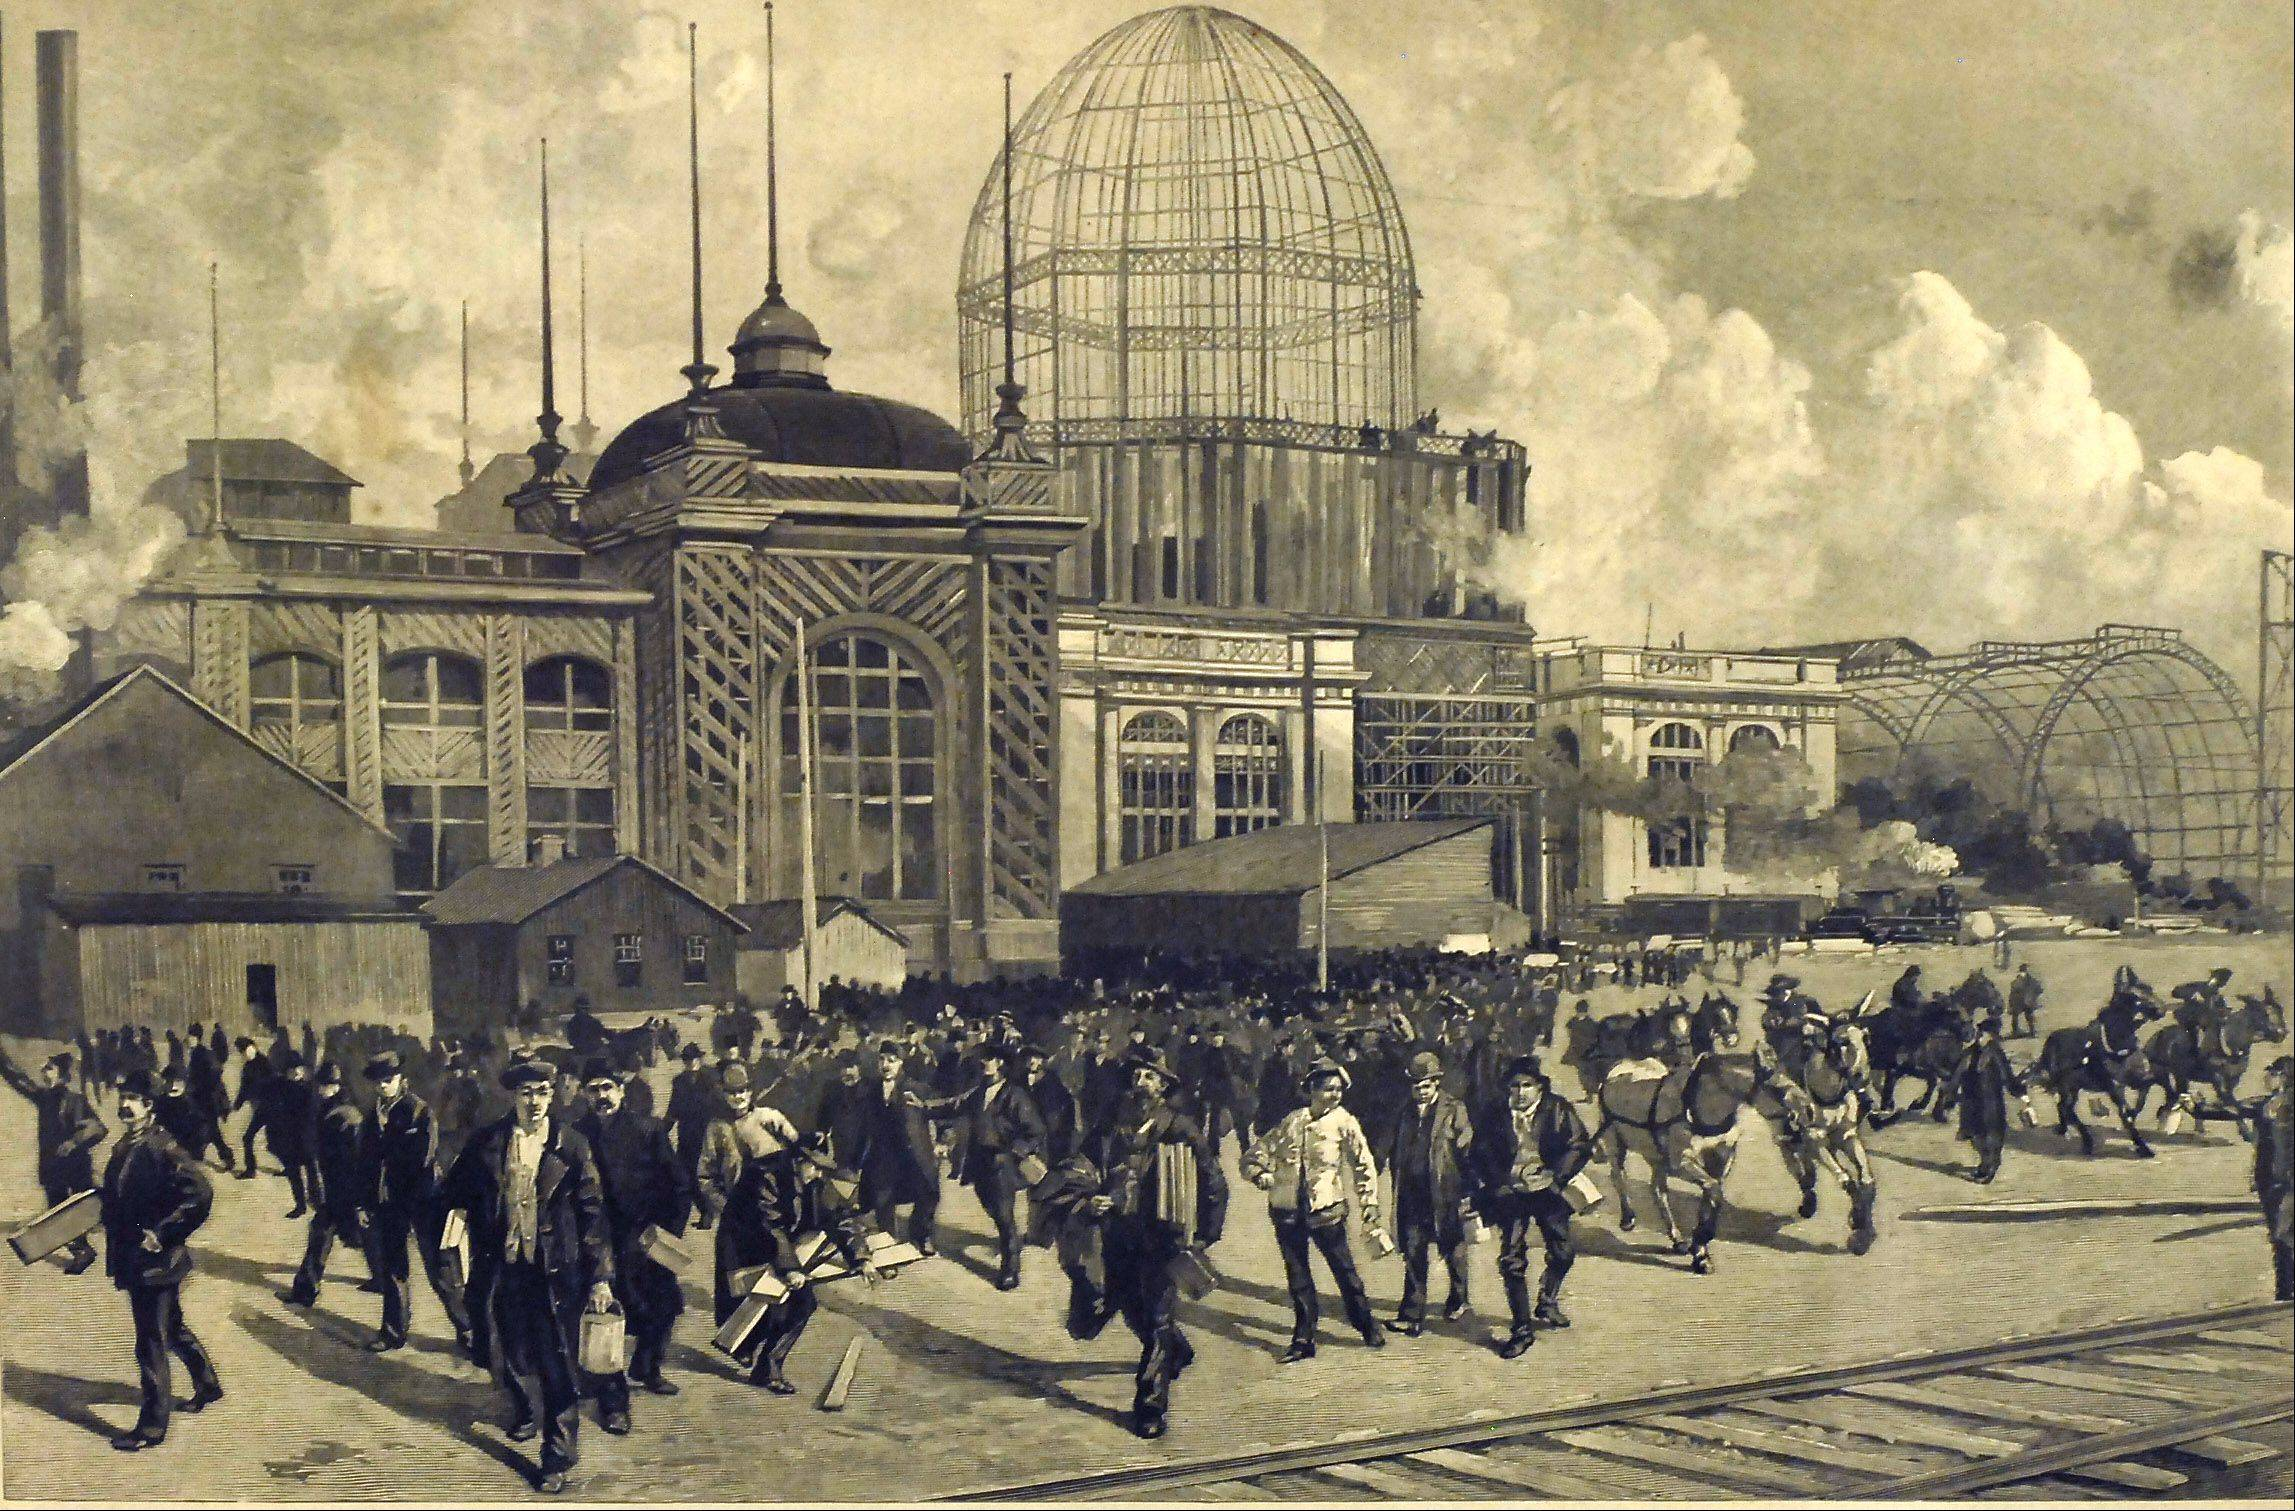 An engraving shows some of the 10,000 construction workers leaving after a day's work building the 1893 fair.